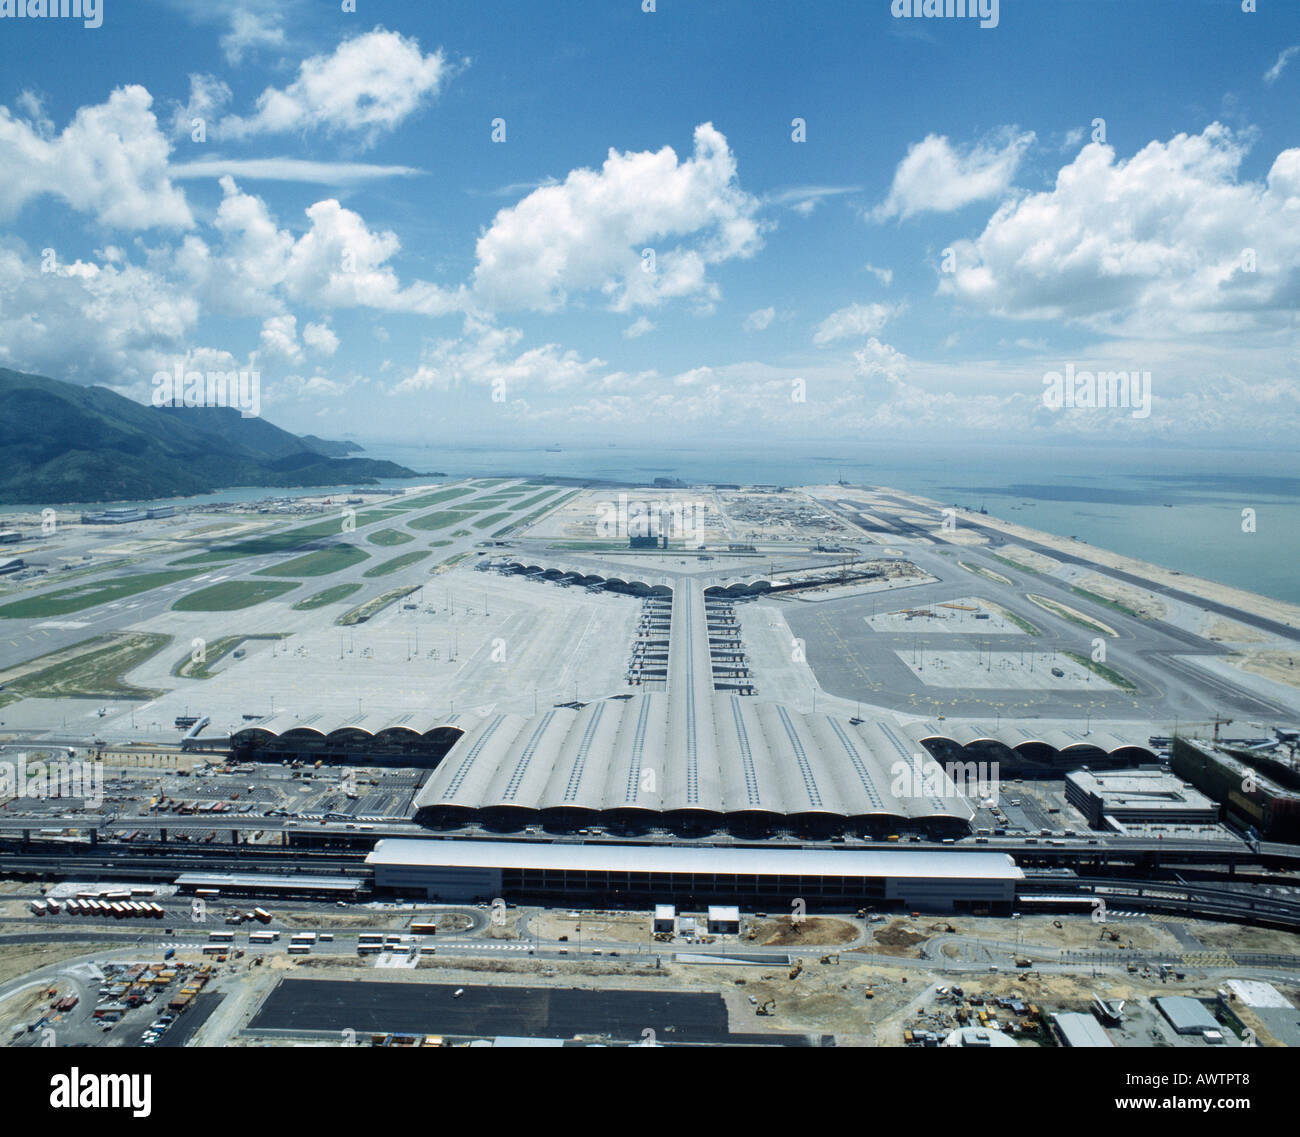 CHEK LAP KOK, HONG KONG INTERNATIONAL AIRPORT, HONG KONG, HONG KONG - Stock Image